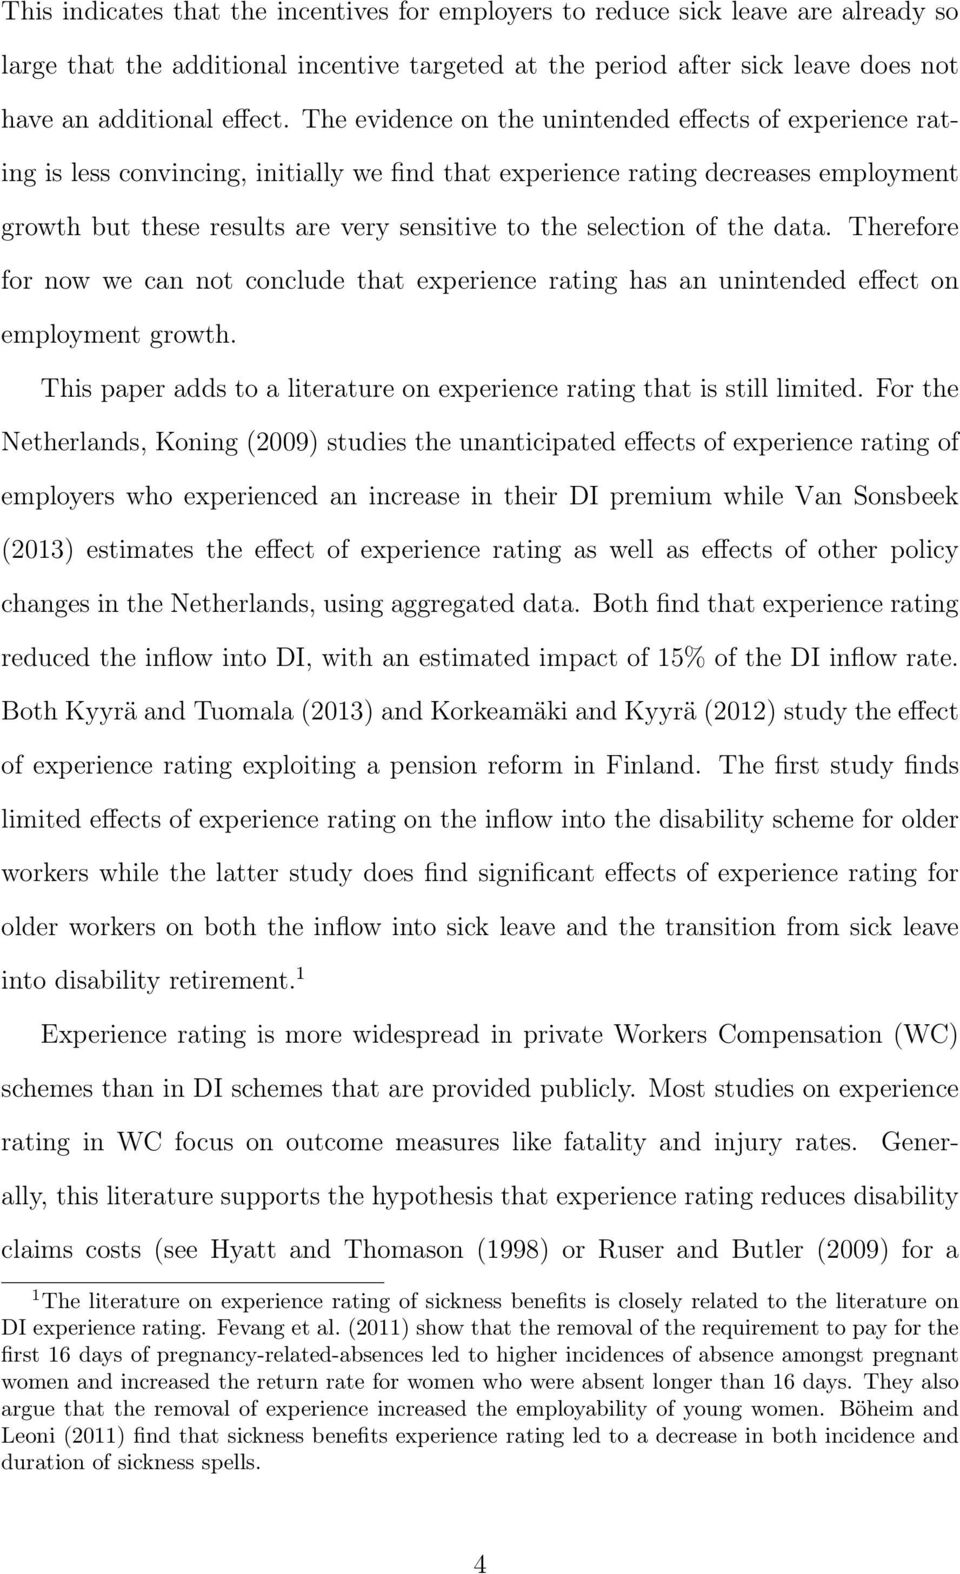 selection of the data. Therefore for now we can not conclude that experience rating has an unintended effect on employment growth.